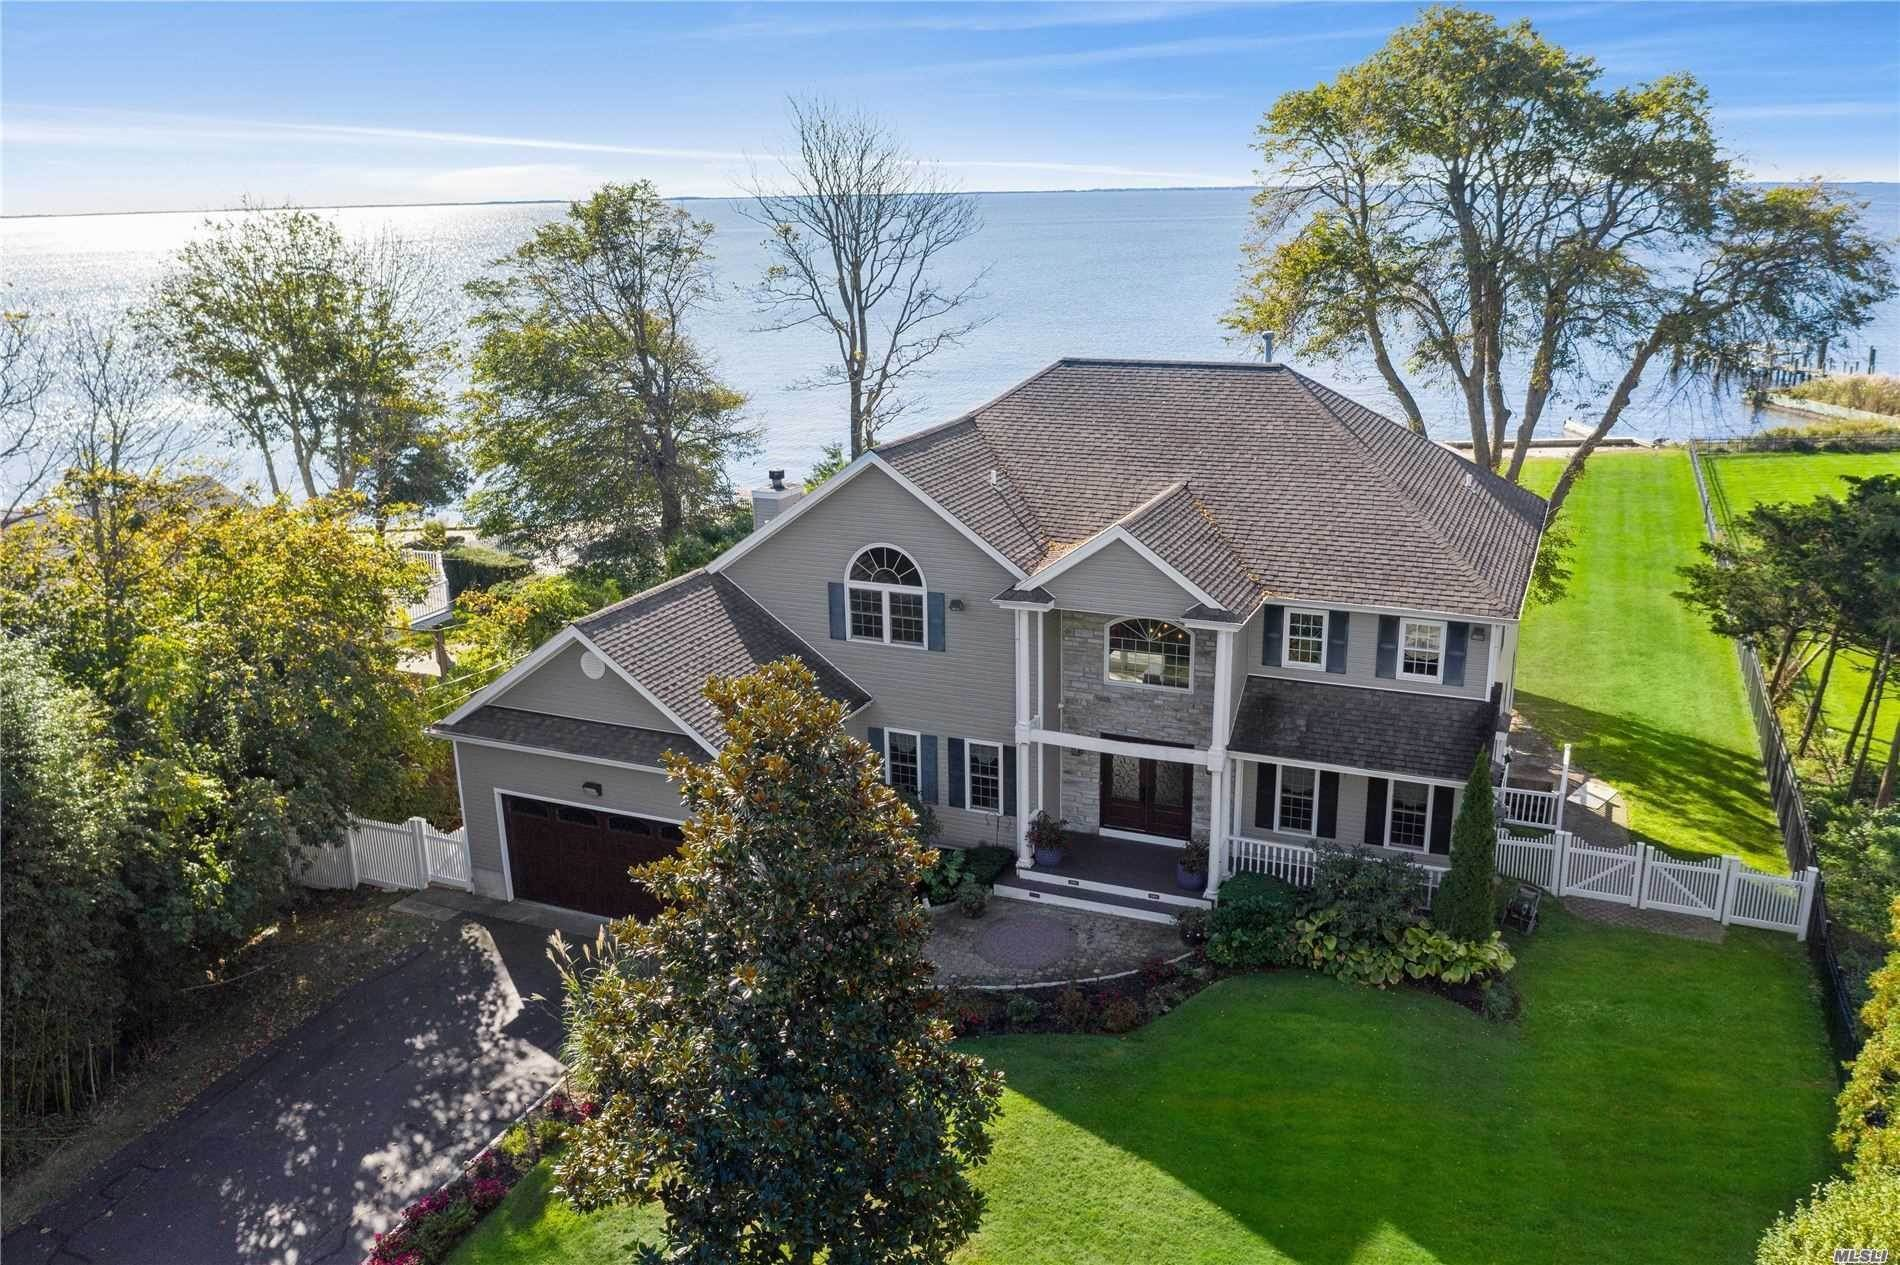 Residential for Sale at 280 Suydam Lane, Bayport, NY 11705 Bayport, New York 11705 United States